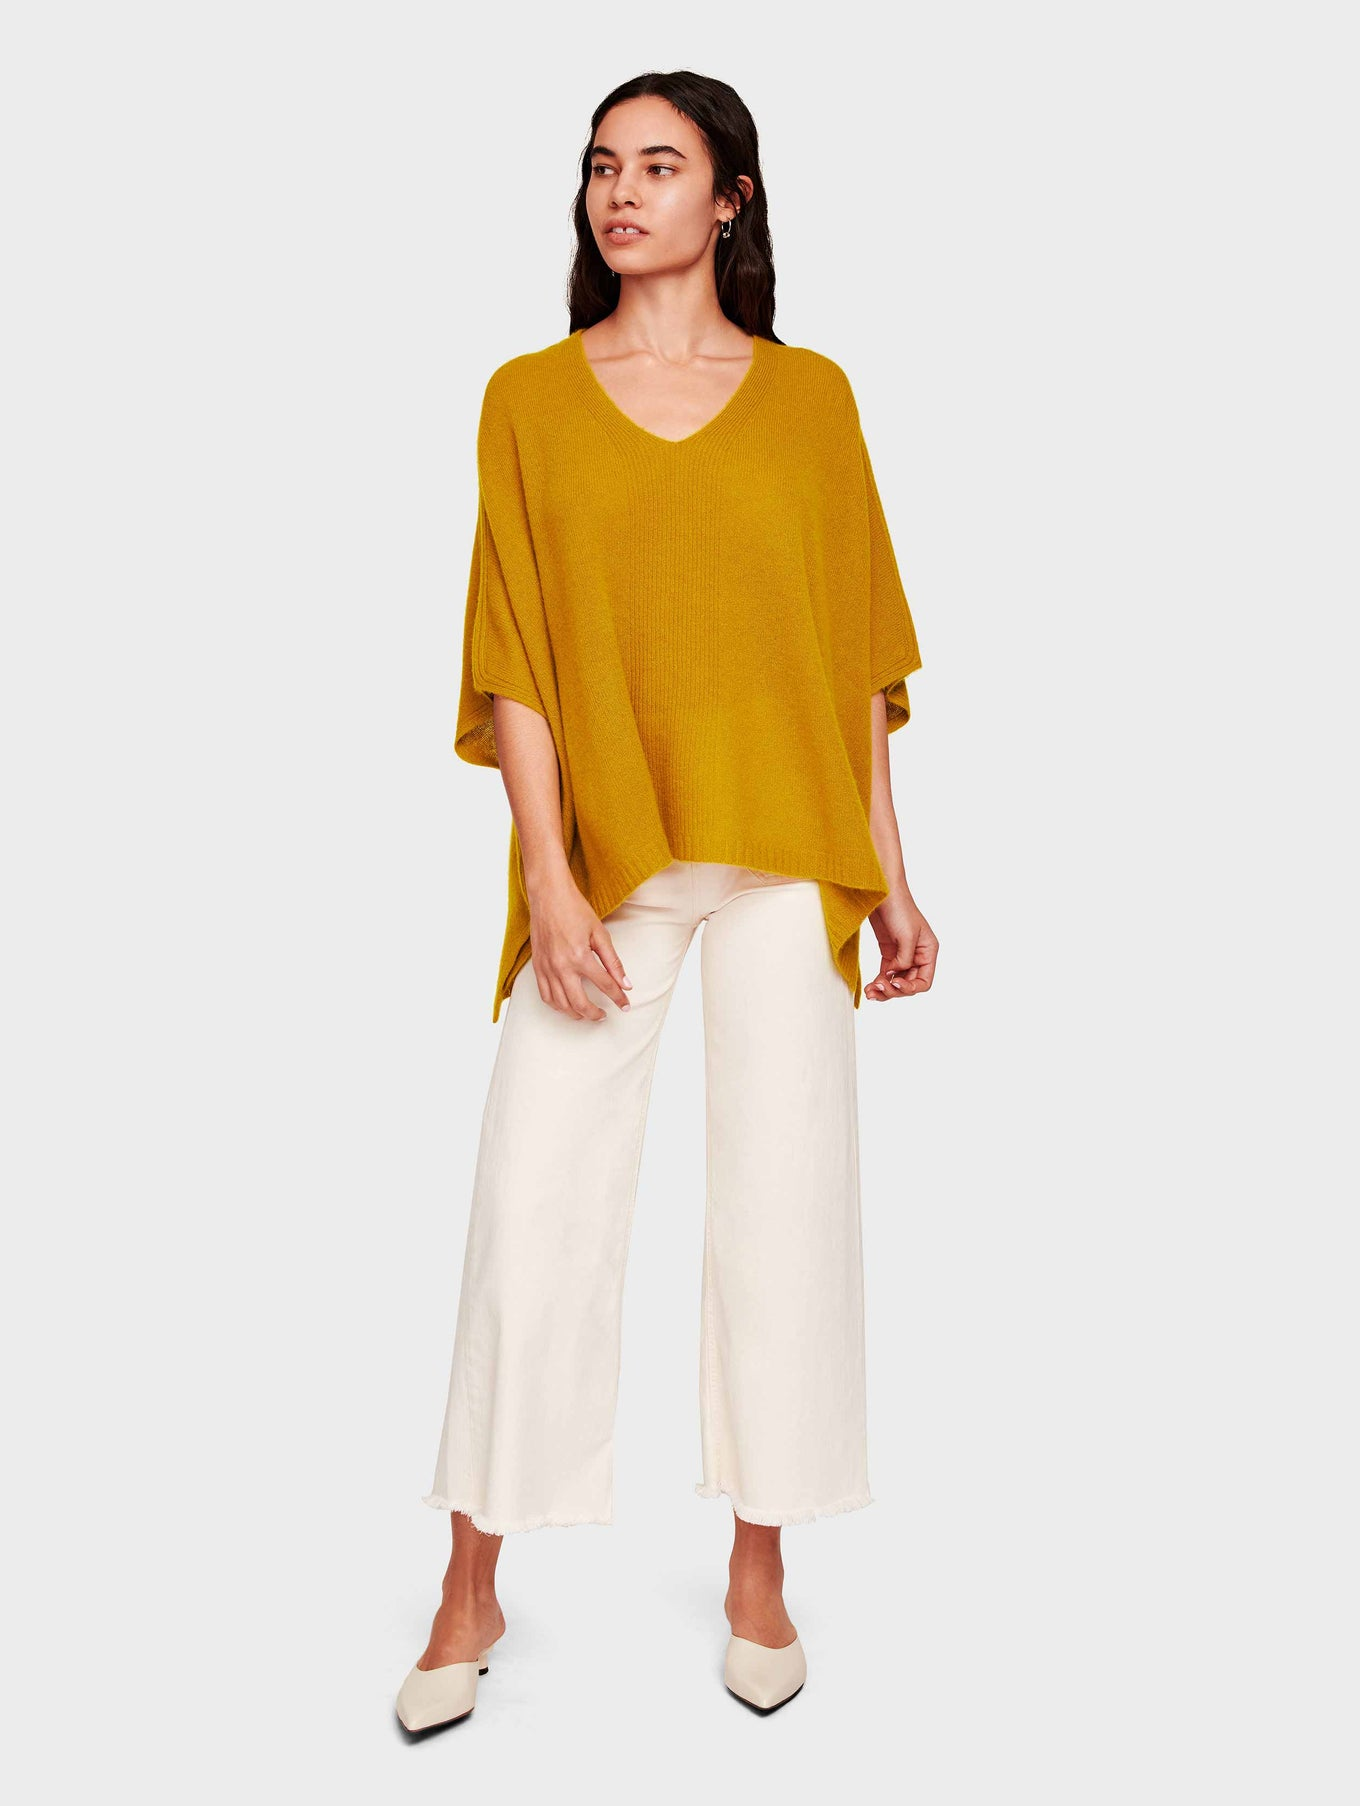 Cashmere V Neck Poncho - Antique Gold - Image 2